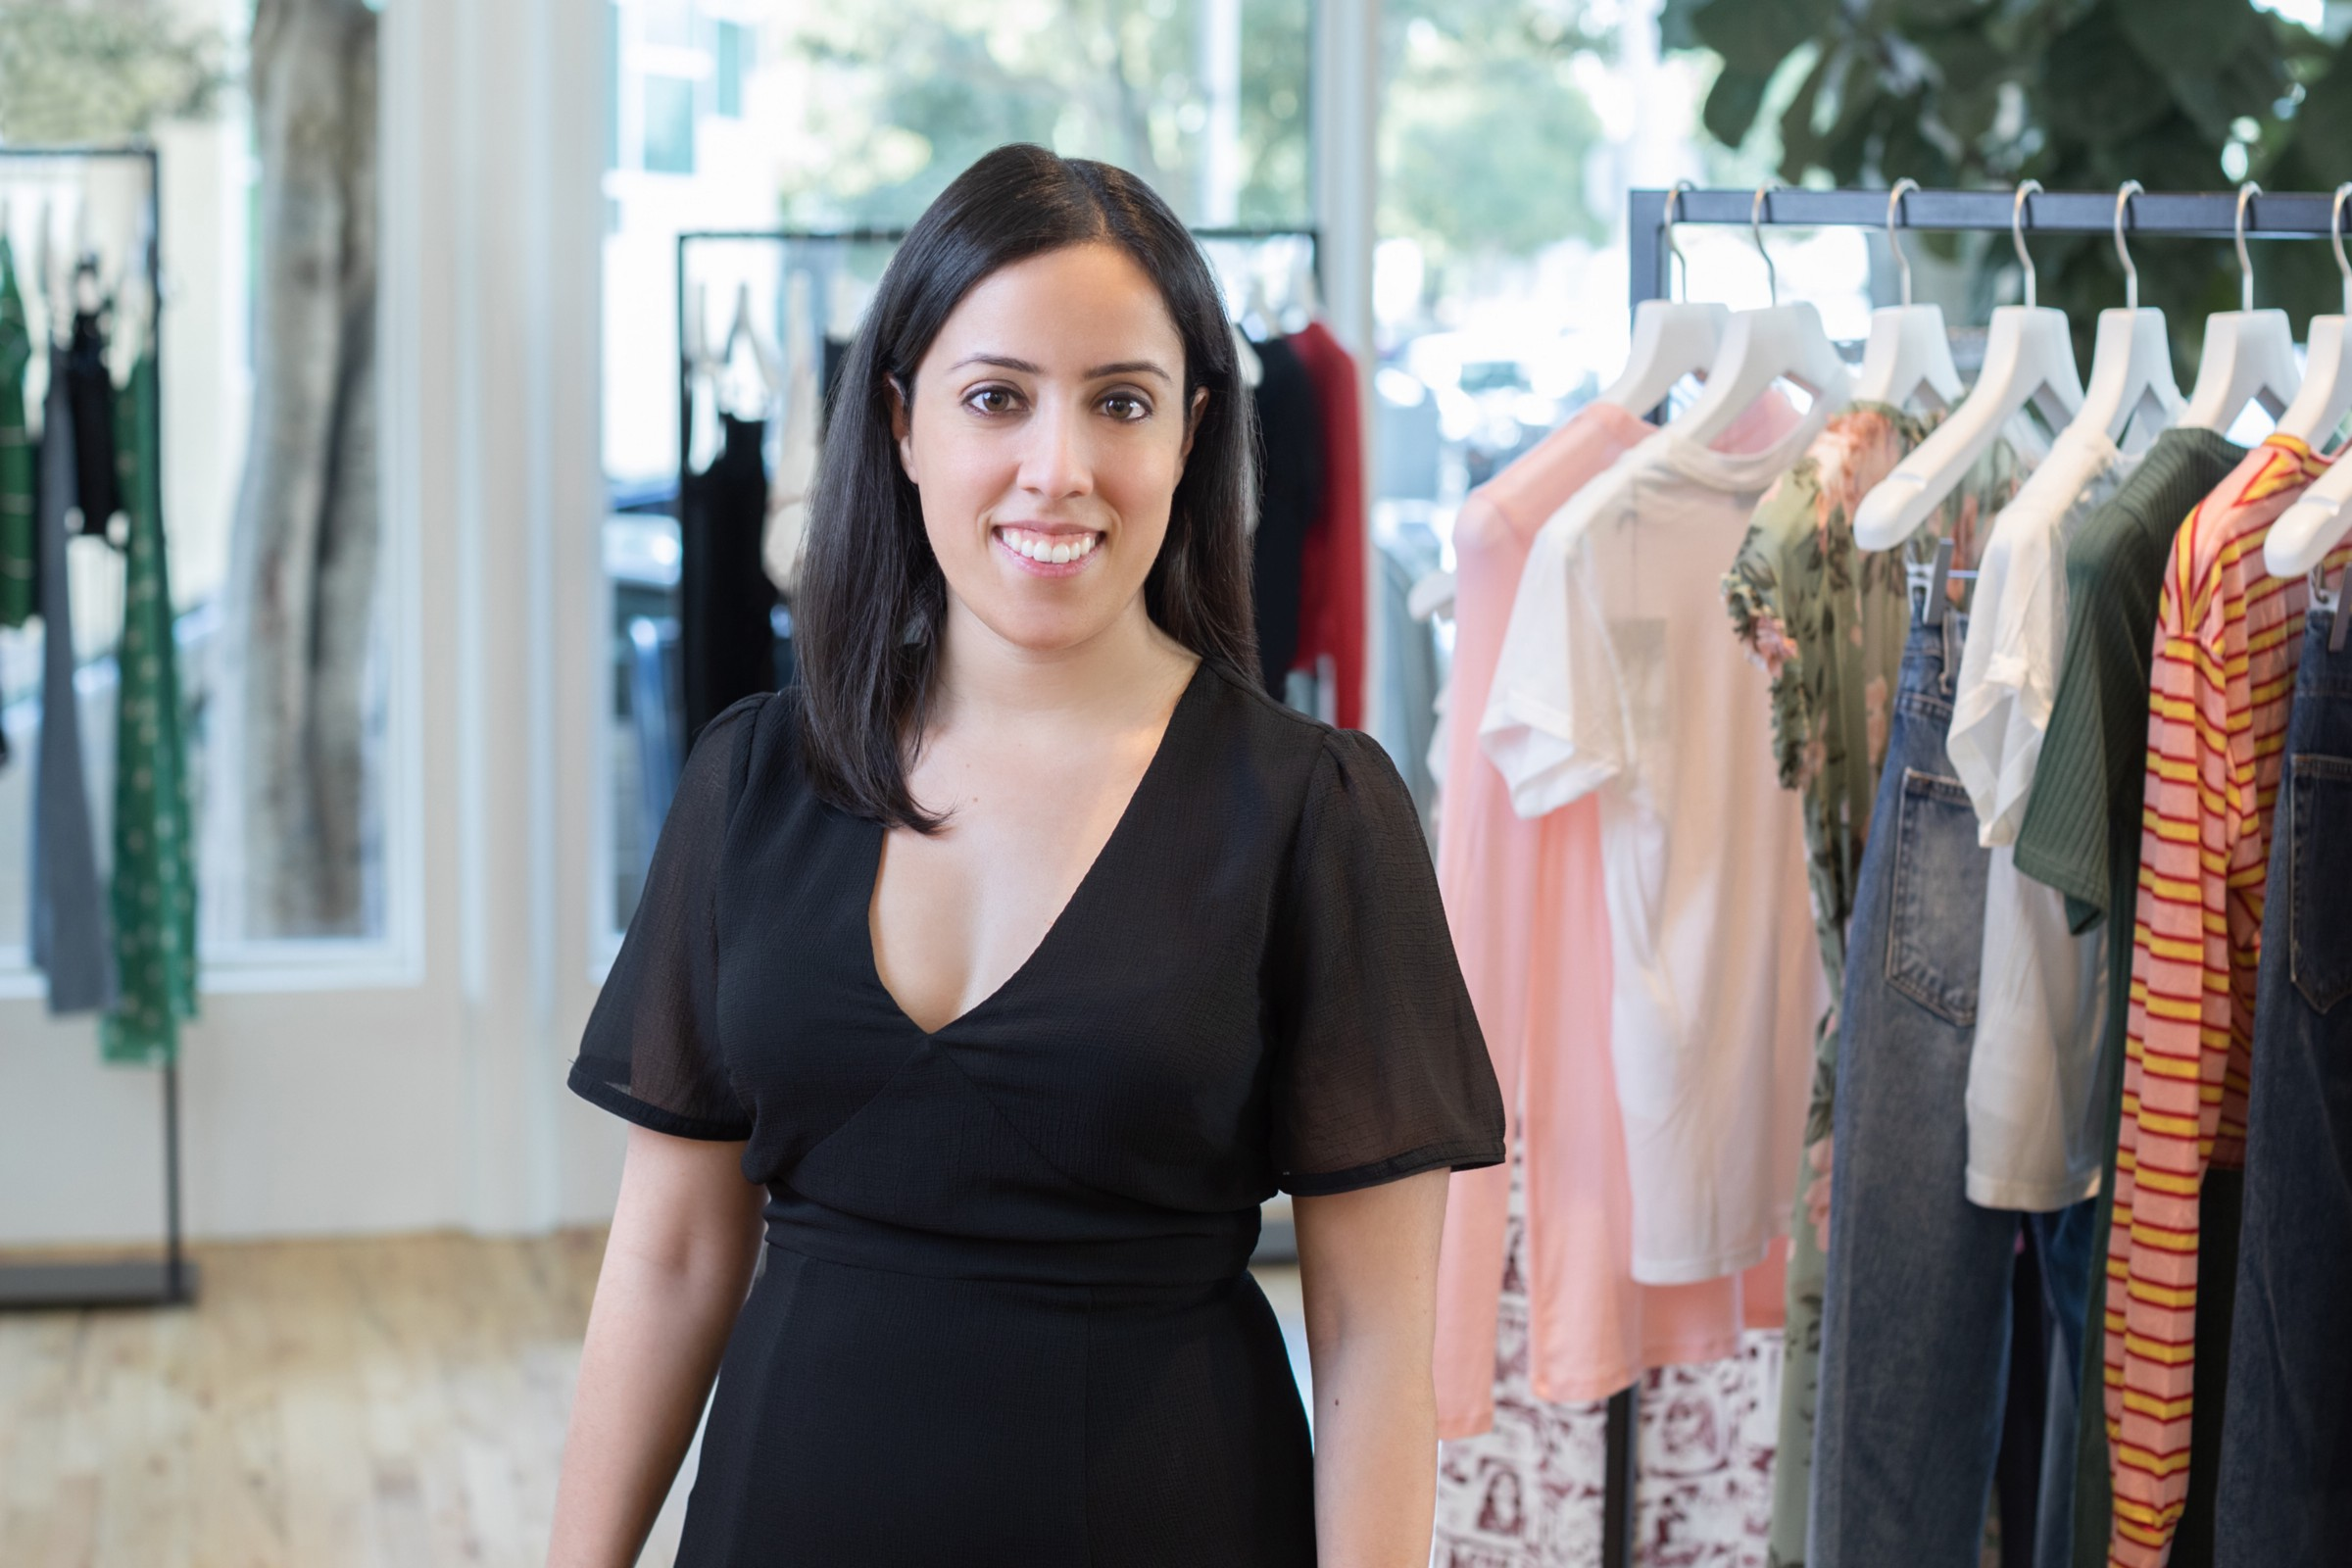 149b12857e3 Making the Fashion Industry More Inclusive for Petite Women  An Interview  with Vanessa Youshaei